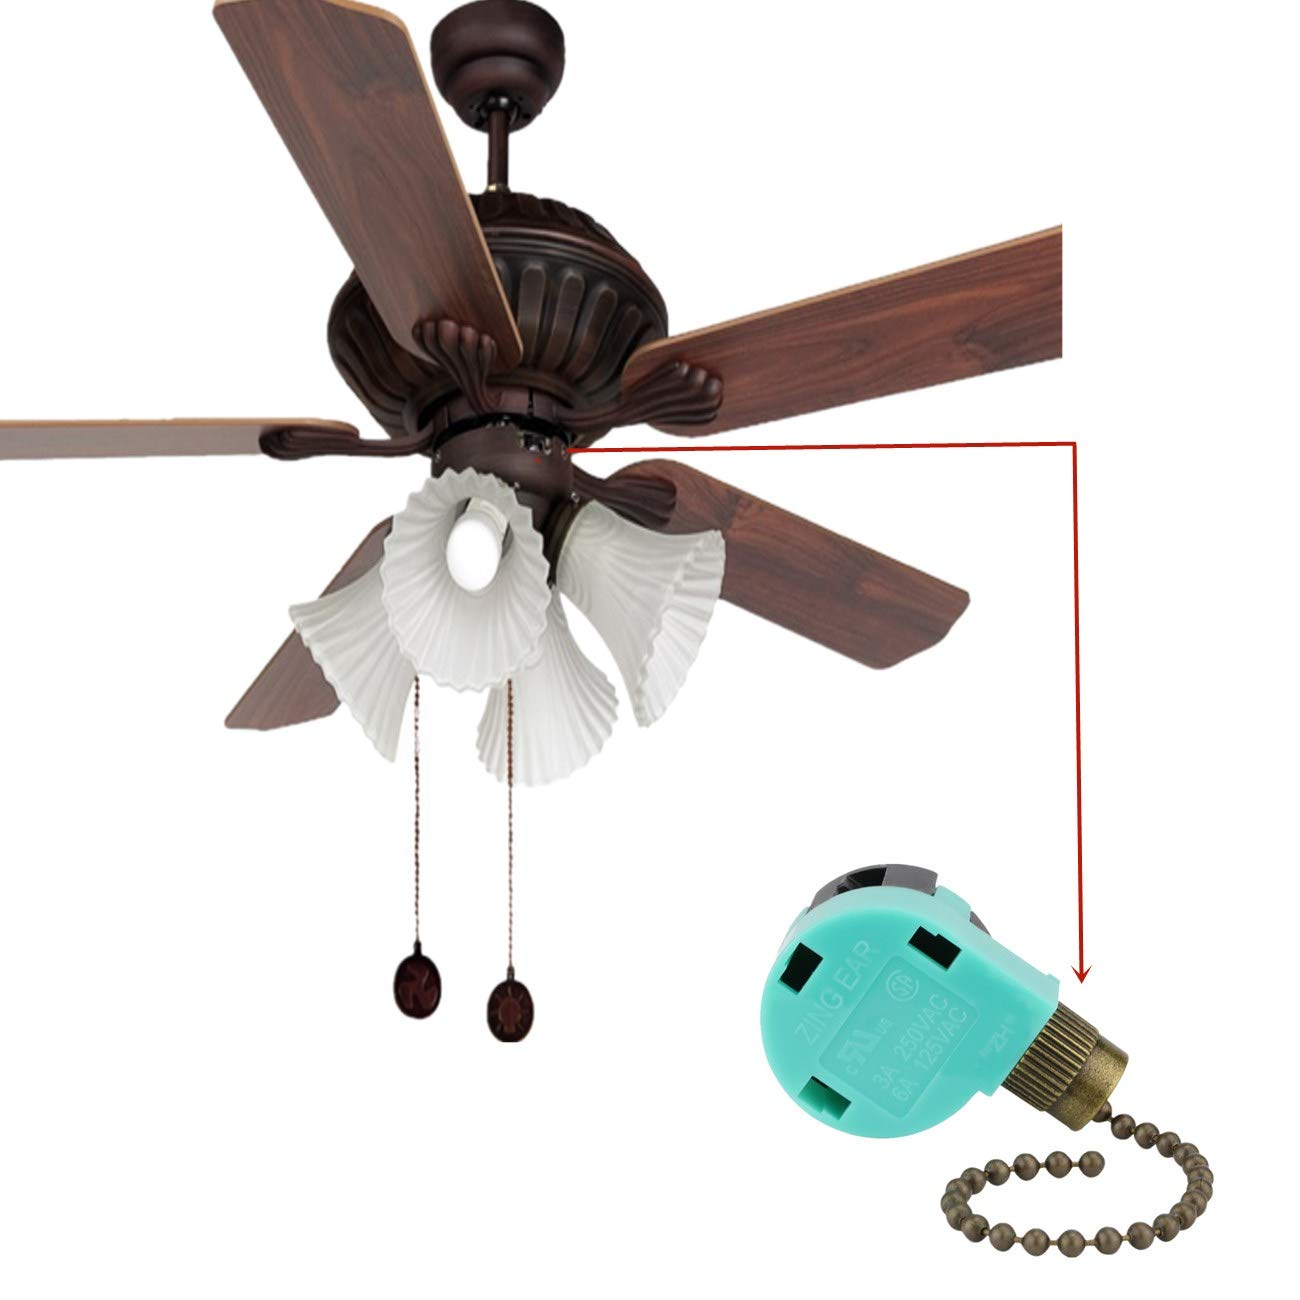 Ceiling Fan Switch ZE-268S6 Zing Ear 3 Speed 4 Wire Pull Chain Control Fans Accessories Switch Ceiling Fan Replacement Speed Control Switch Dayone